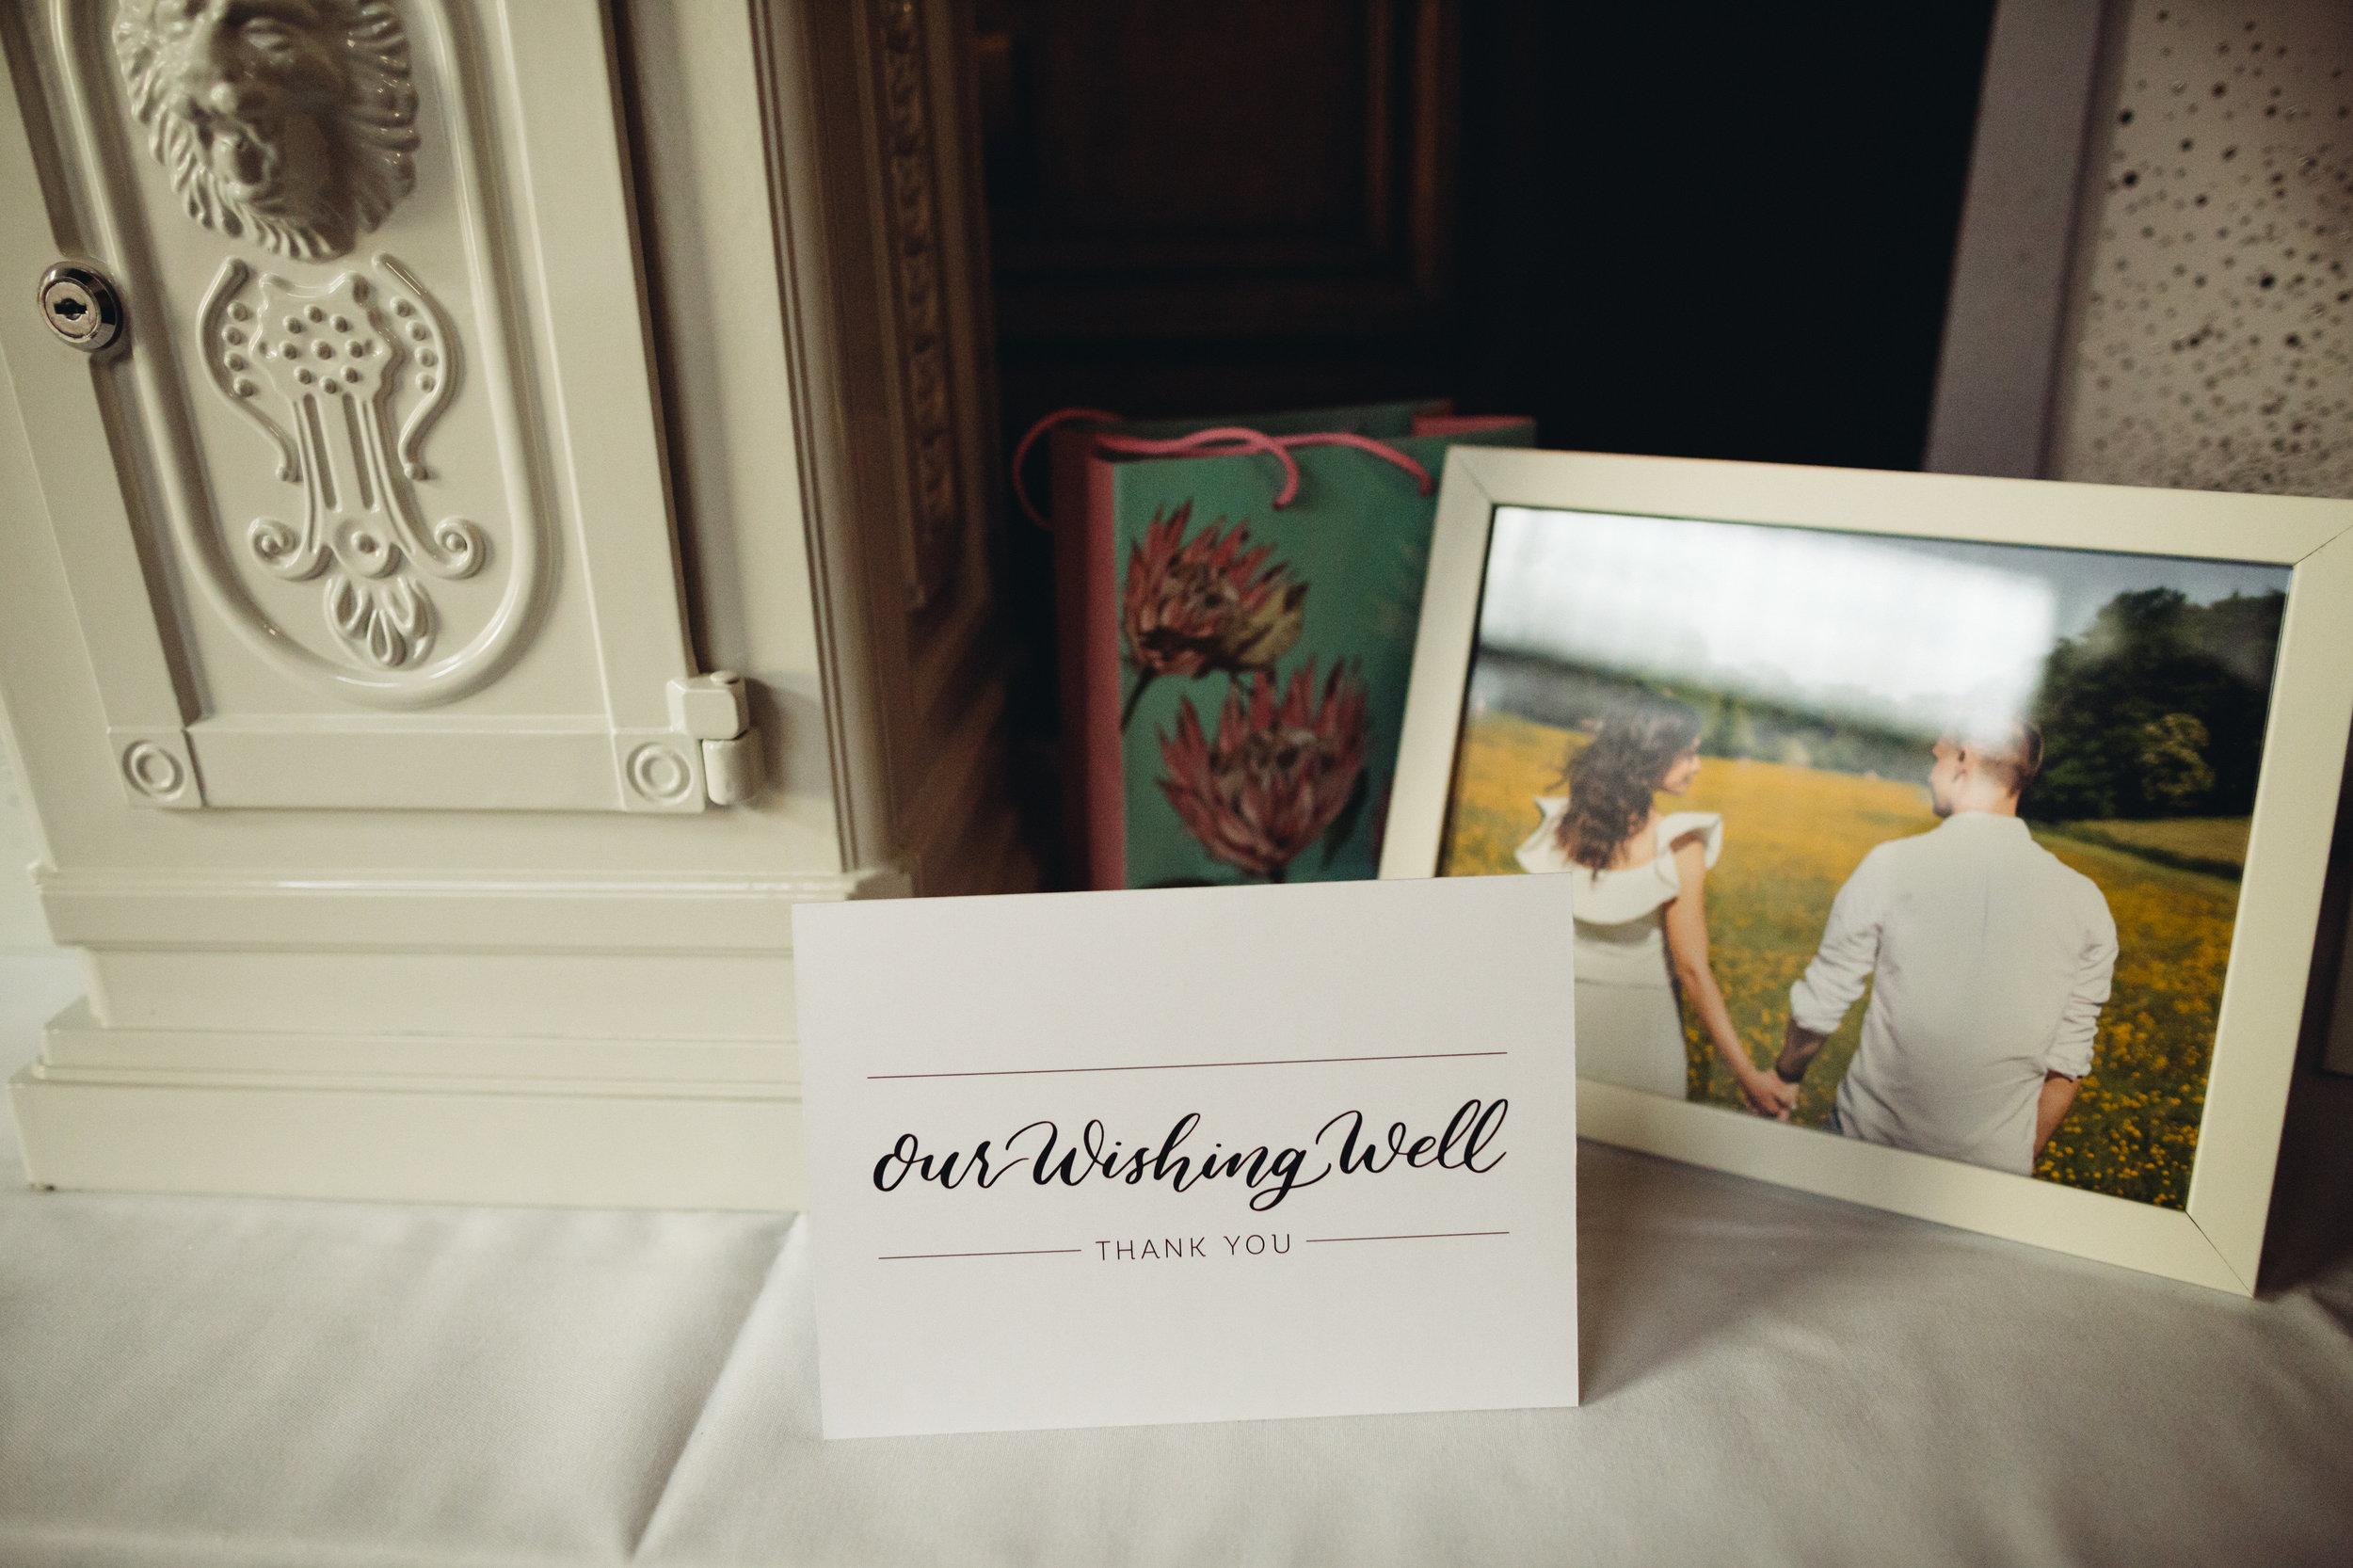 A wedding wishing well sign on a table